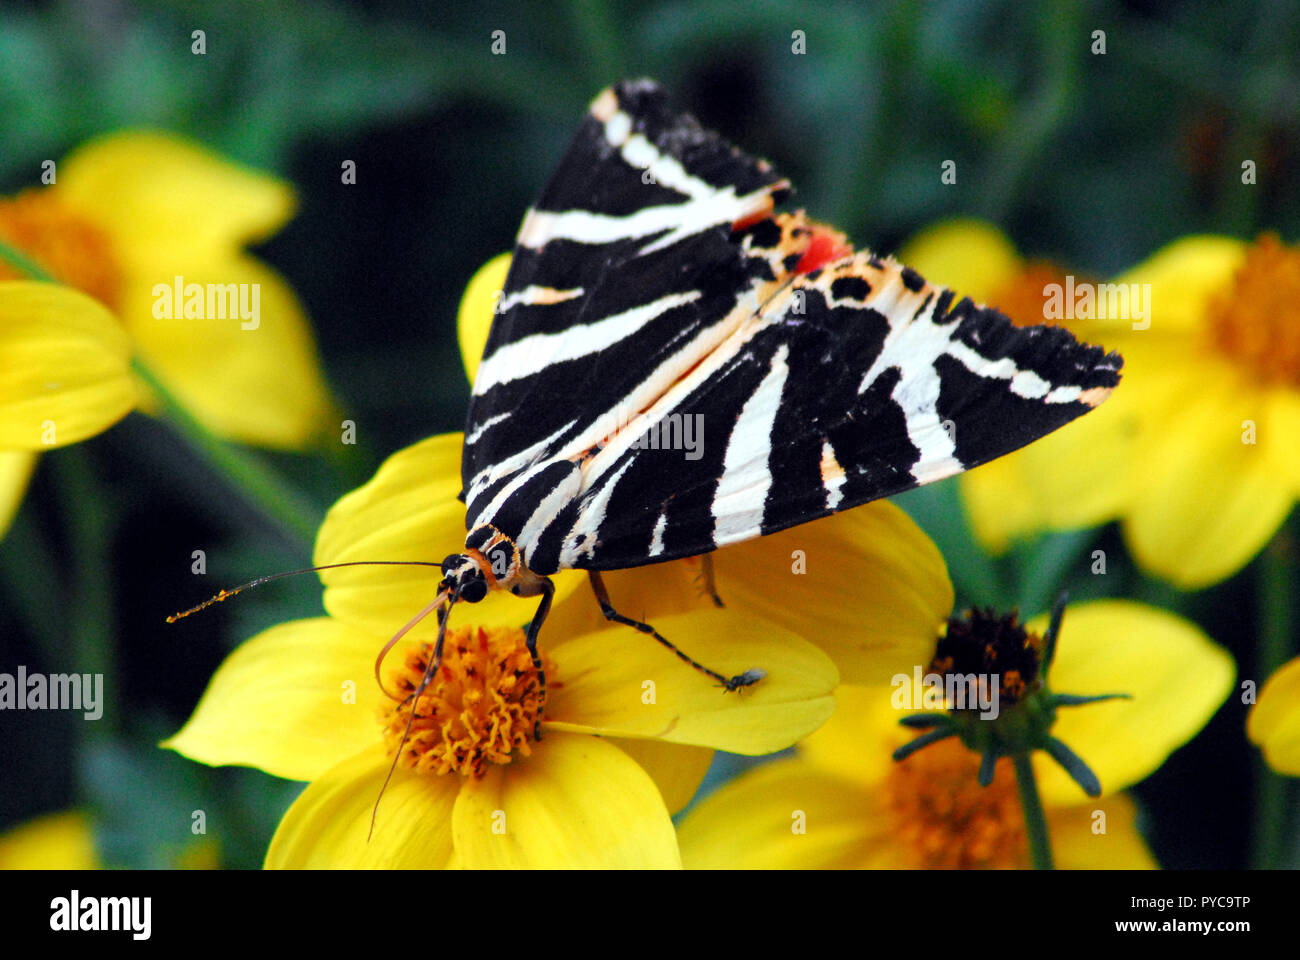 Close up of a uniquely beautiful black, white and red butterfly on yellow flowers in Brittany, France.  Note the tiny fly by its foot. - Stock Image